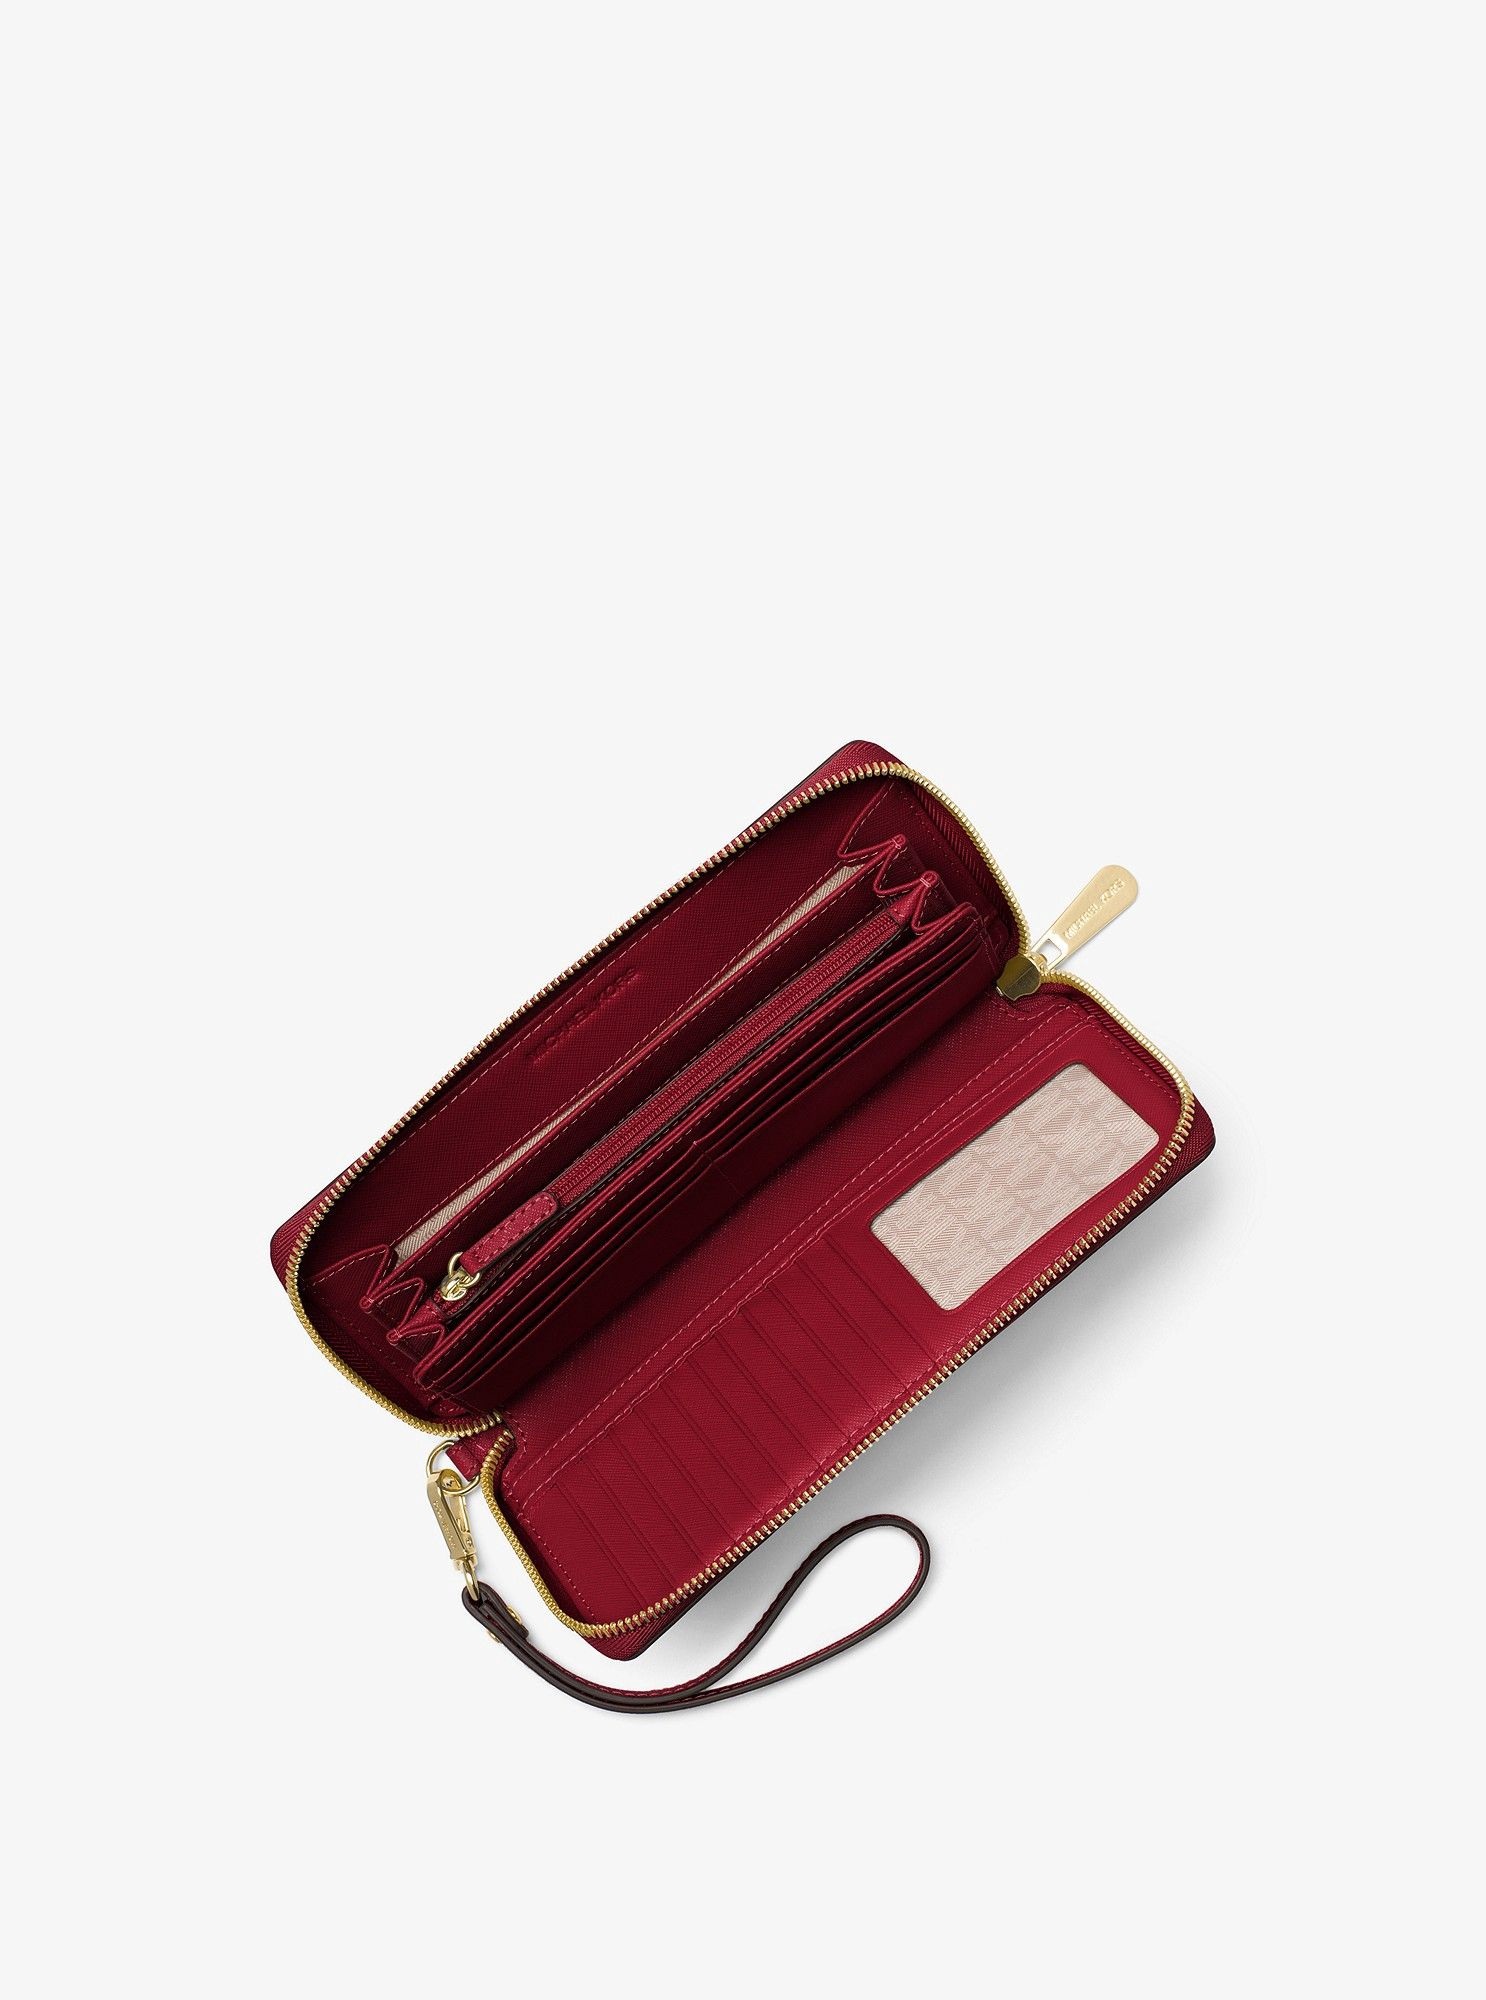 81cea0dc9001a Michael Kors Jet Set Travel Leather Continental Wristlet - Bright Red